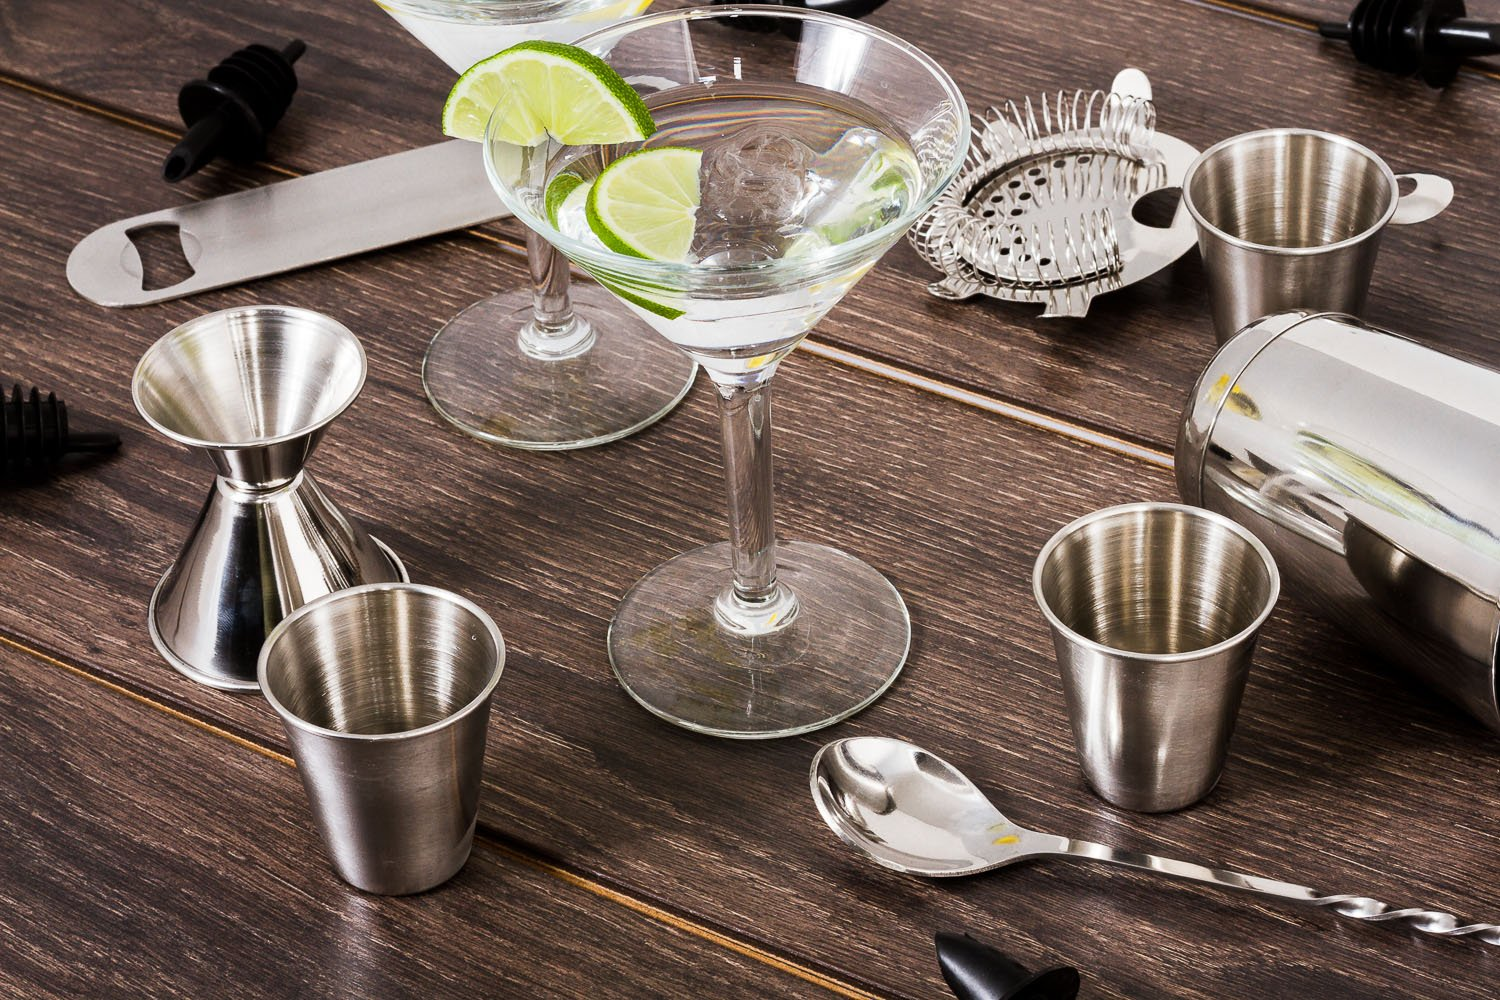 16 Pcs Cocktail Shaker Home Bar Set – Complete Bartender Kit with Double Bar Jigger, Pour Spouts, Drink Shaker, Hawthorne Strainer, Bar Spoon, Bottle Opener and Tin Shot Glasses by Lexi Home (Image #7)